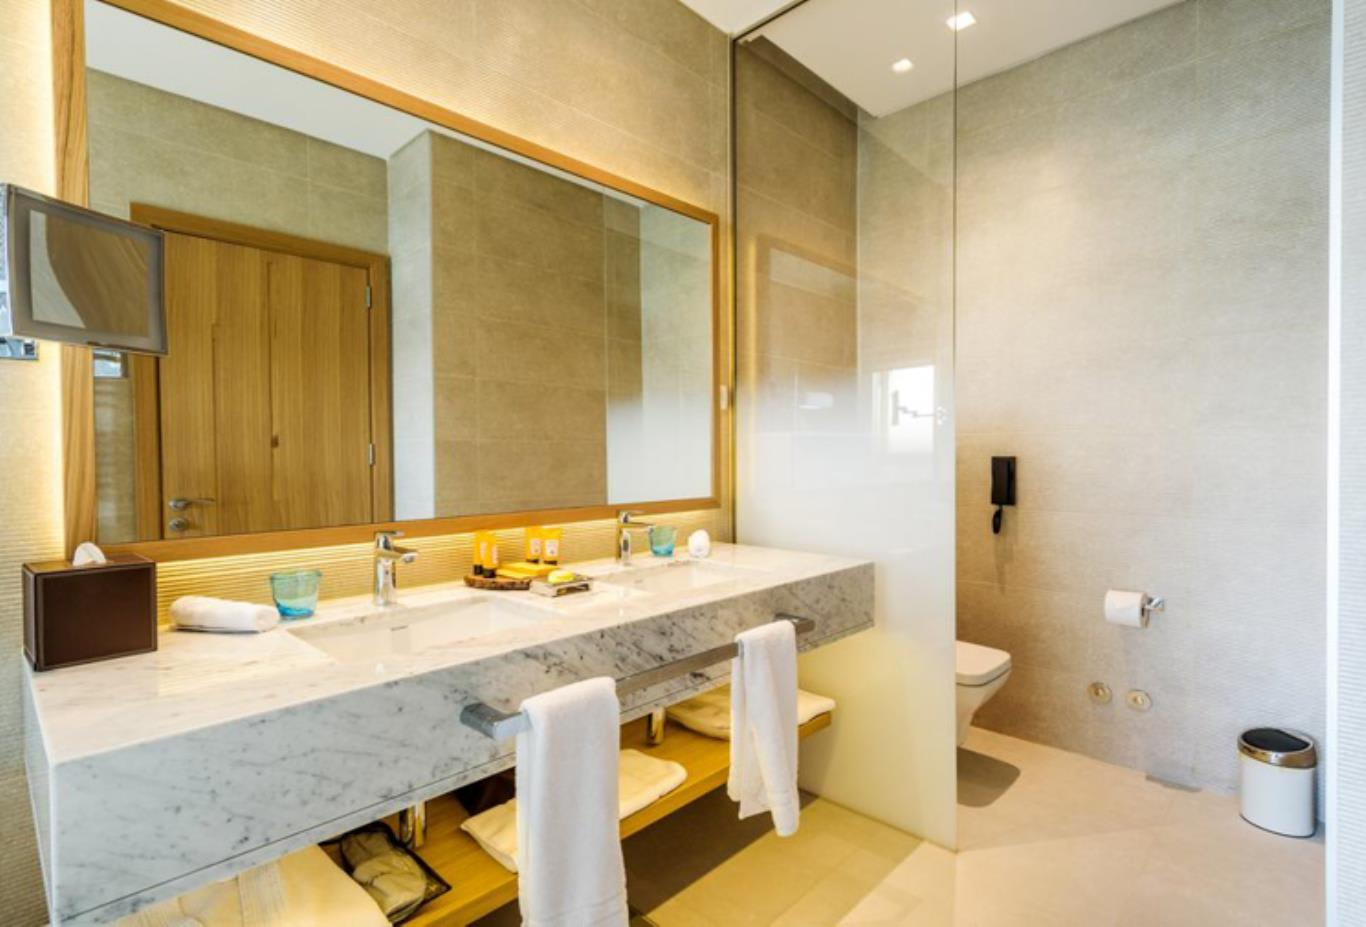 Grand Superior Room bathroom